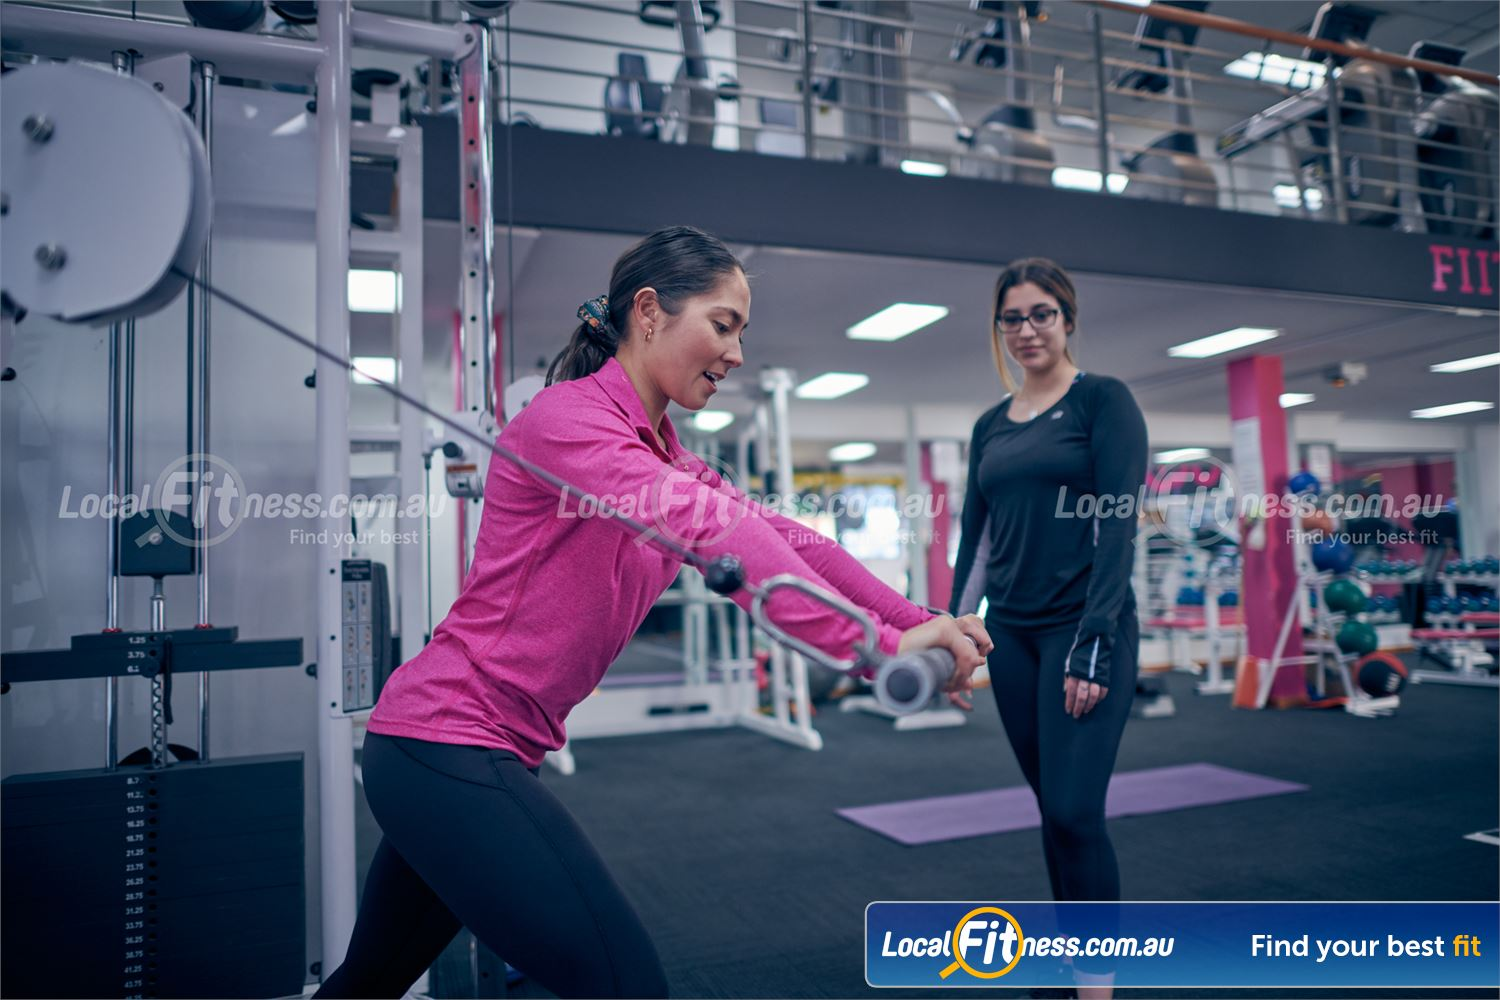 Fernwood Fitness Carlton At Fernwood Carlton gym, we invest in the right equipment to get you results.